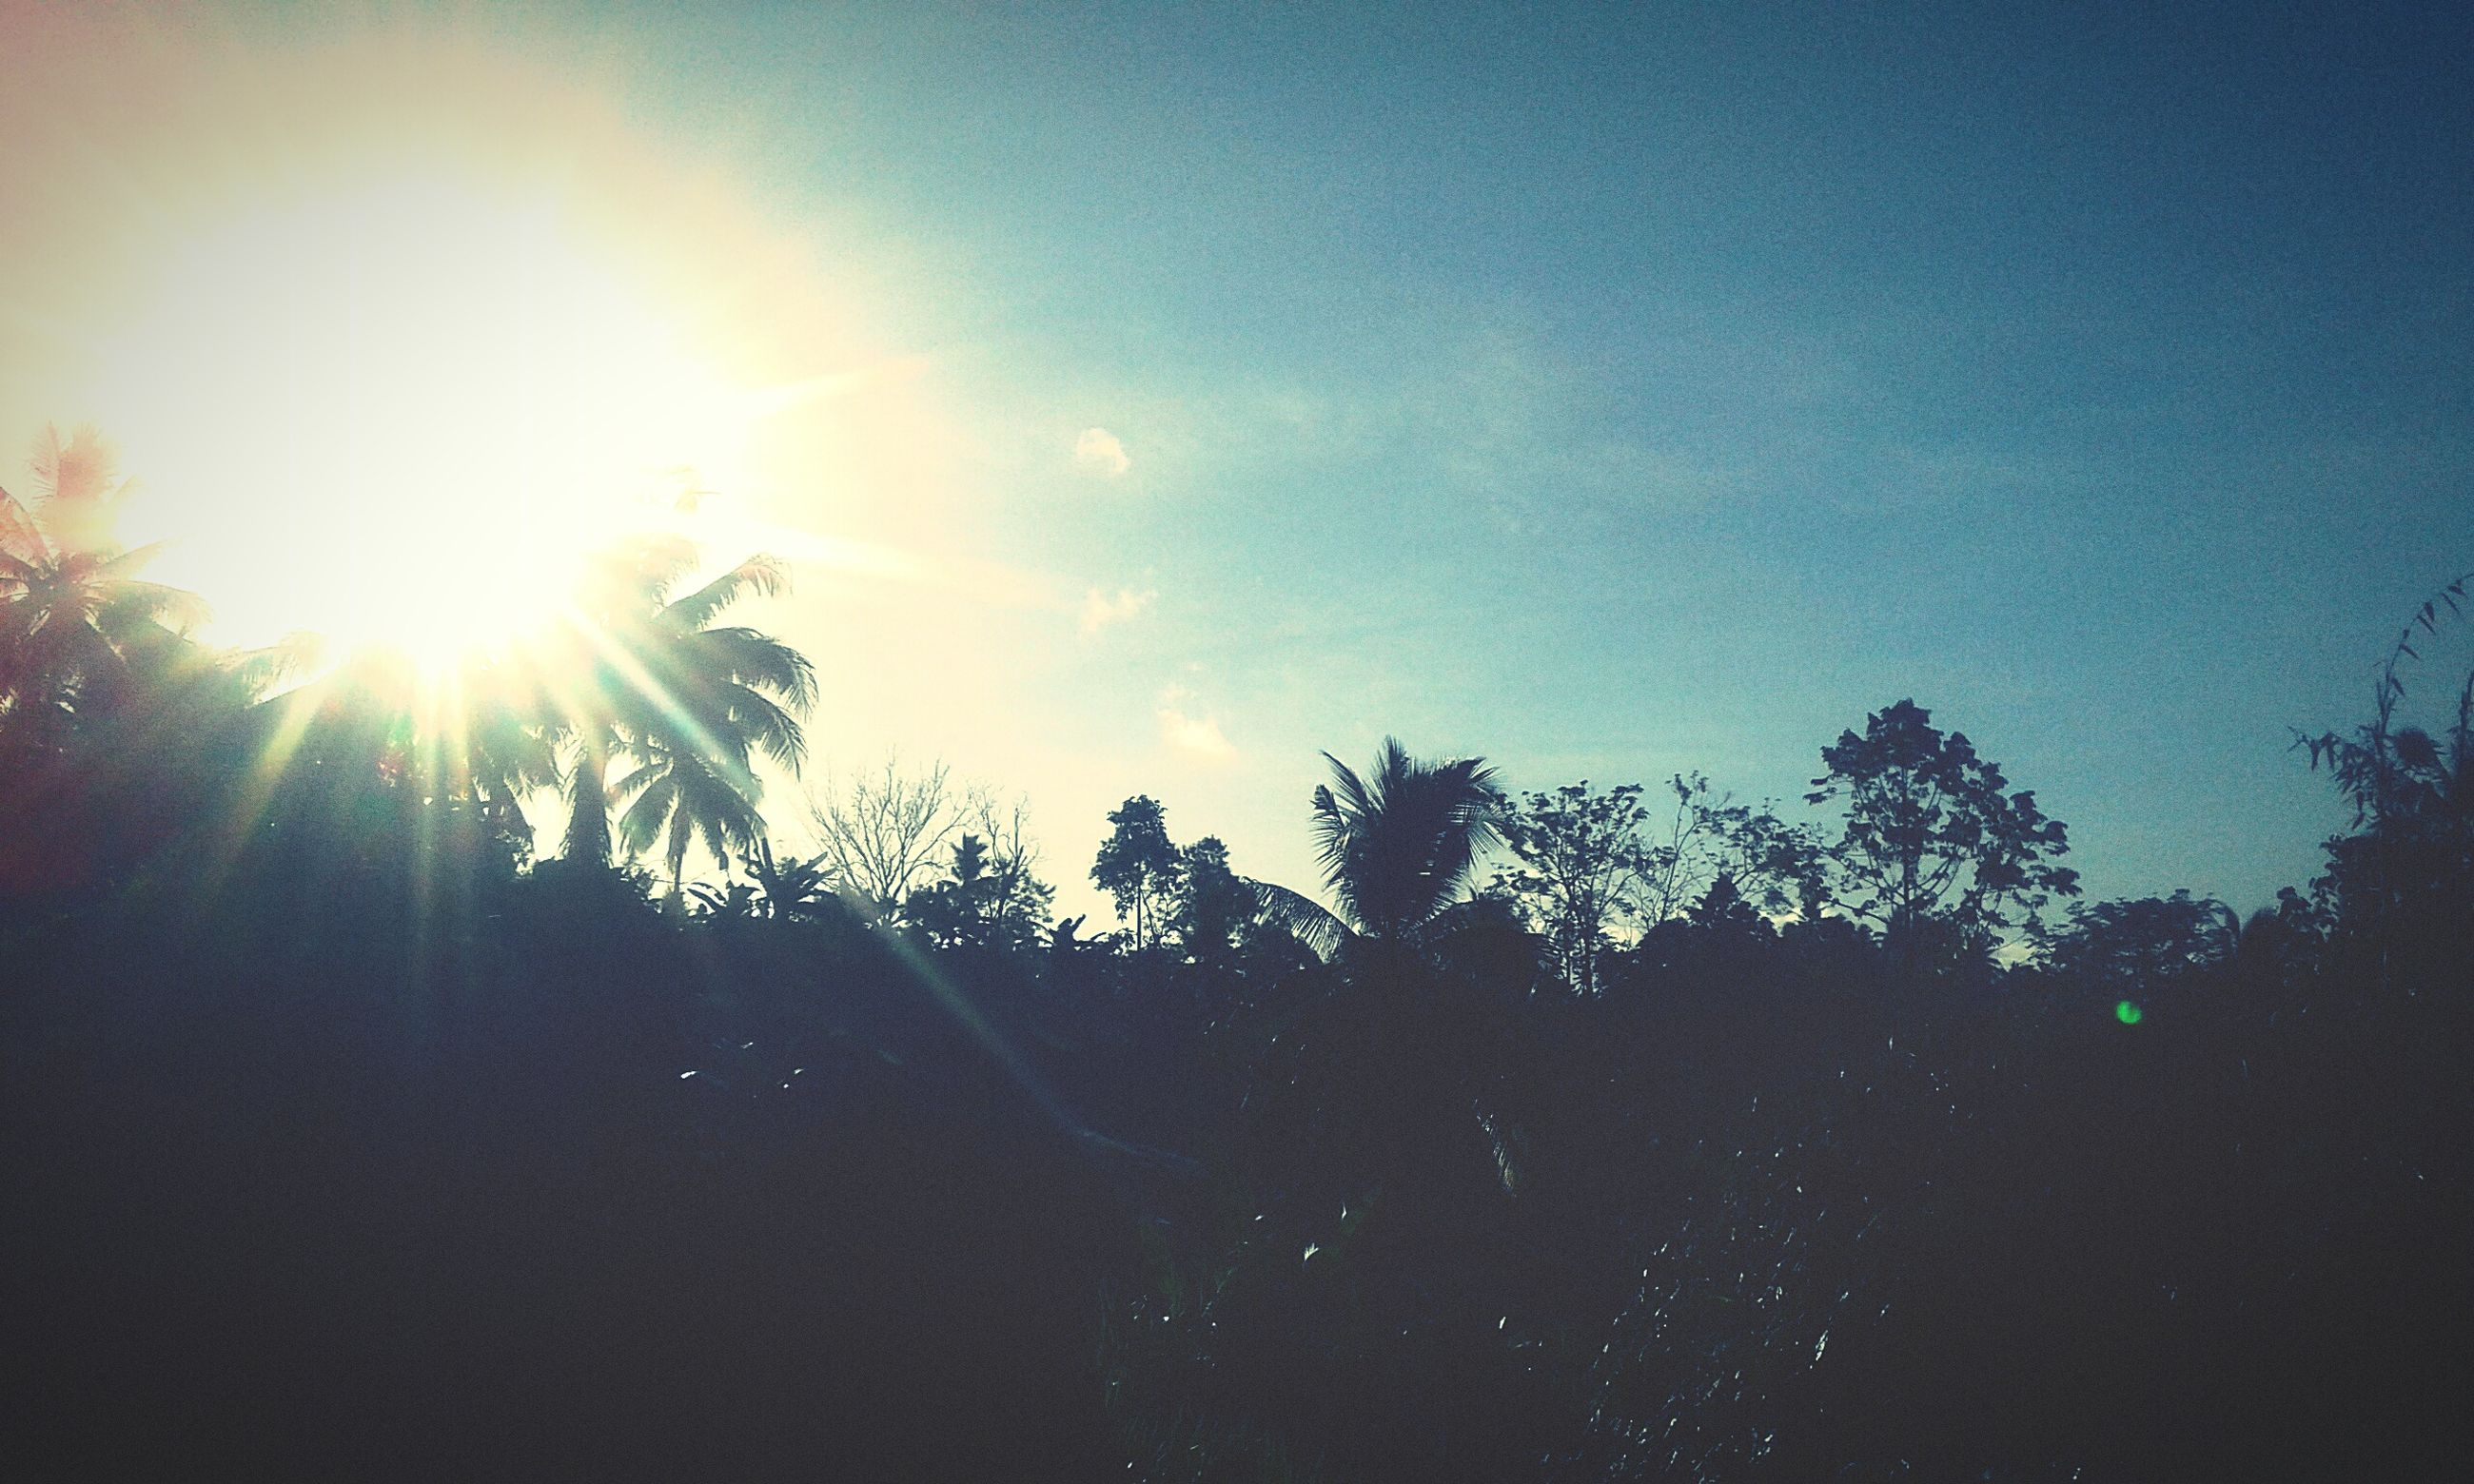 sun, lens flare, sunlight, sky, sunbeam, nature, tree, low angle view, tranquility, no people, scenics, silhouette, outdoors, beauty in nature, day